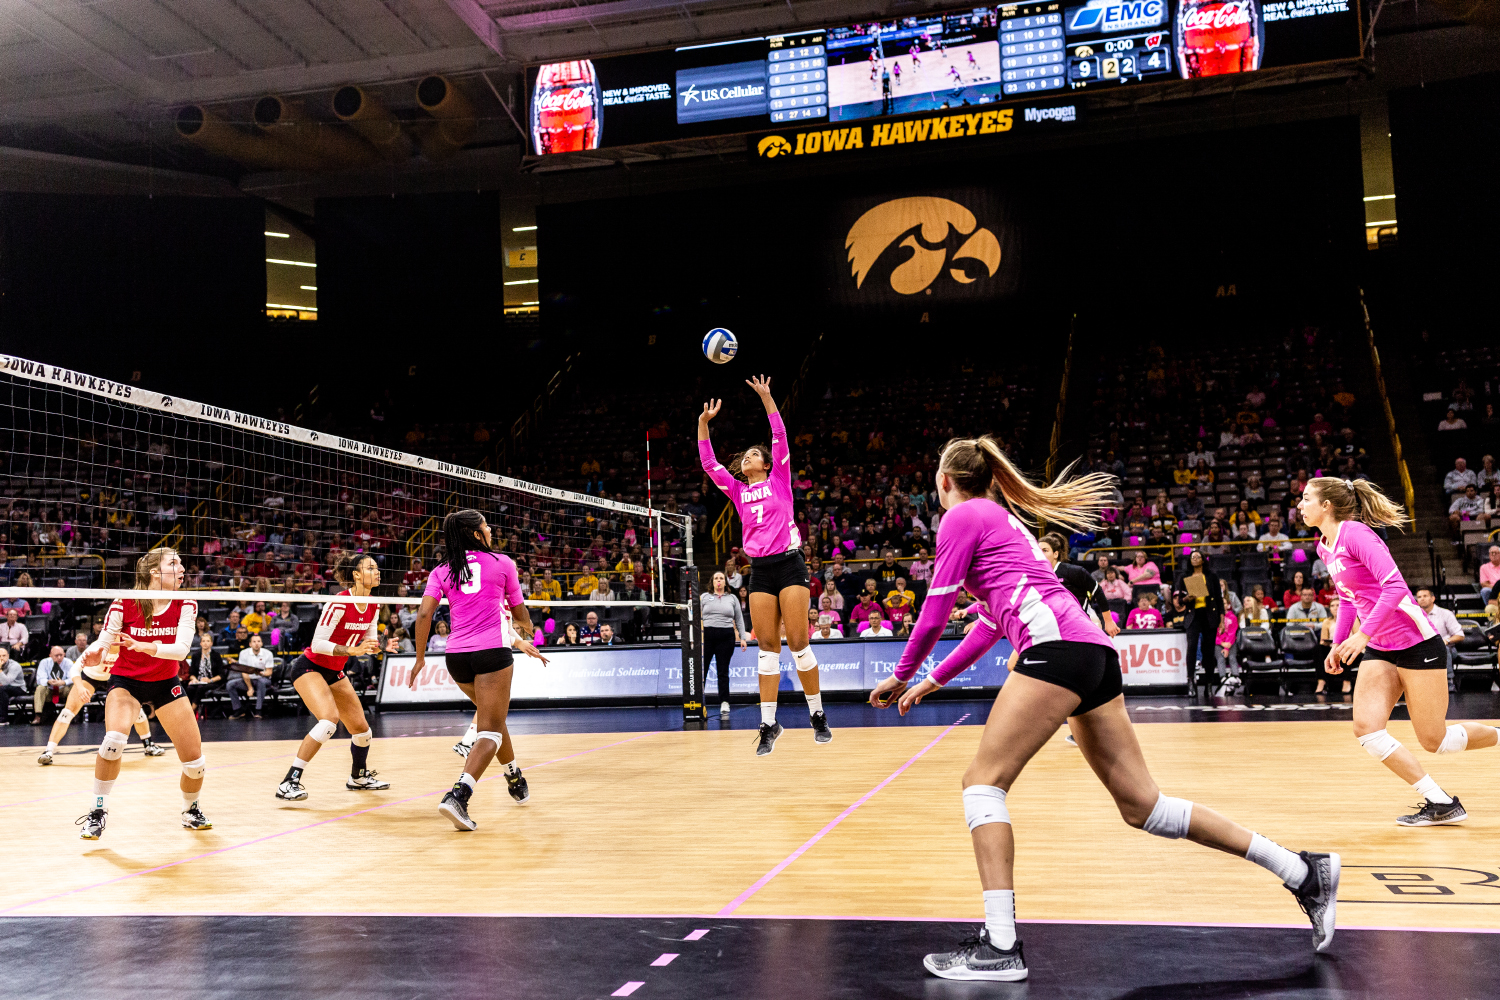 Iowa's Brie Orr sets the ball during a volleyball match against Wisconsin on Saturday, Oct. 6, 2018. The Hawkeyes defeated the number six ranked Badgers 3-2.